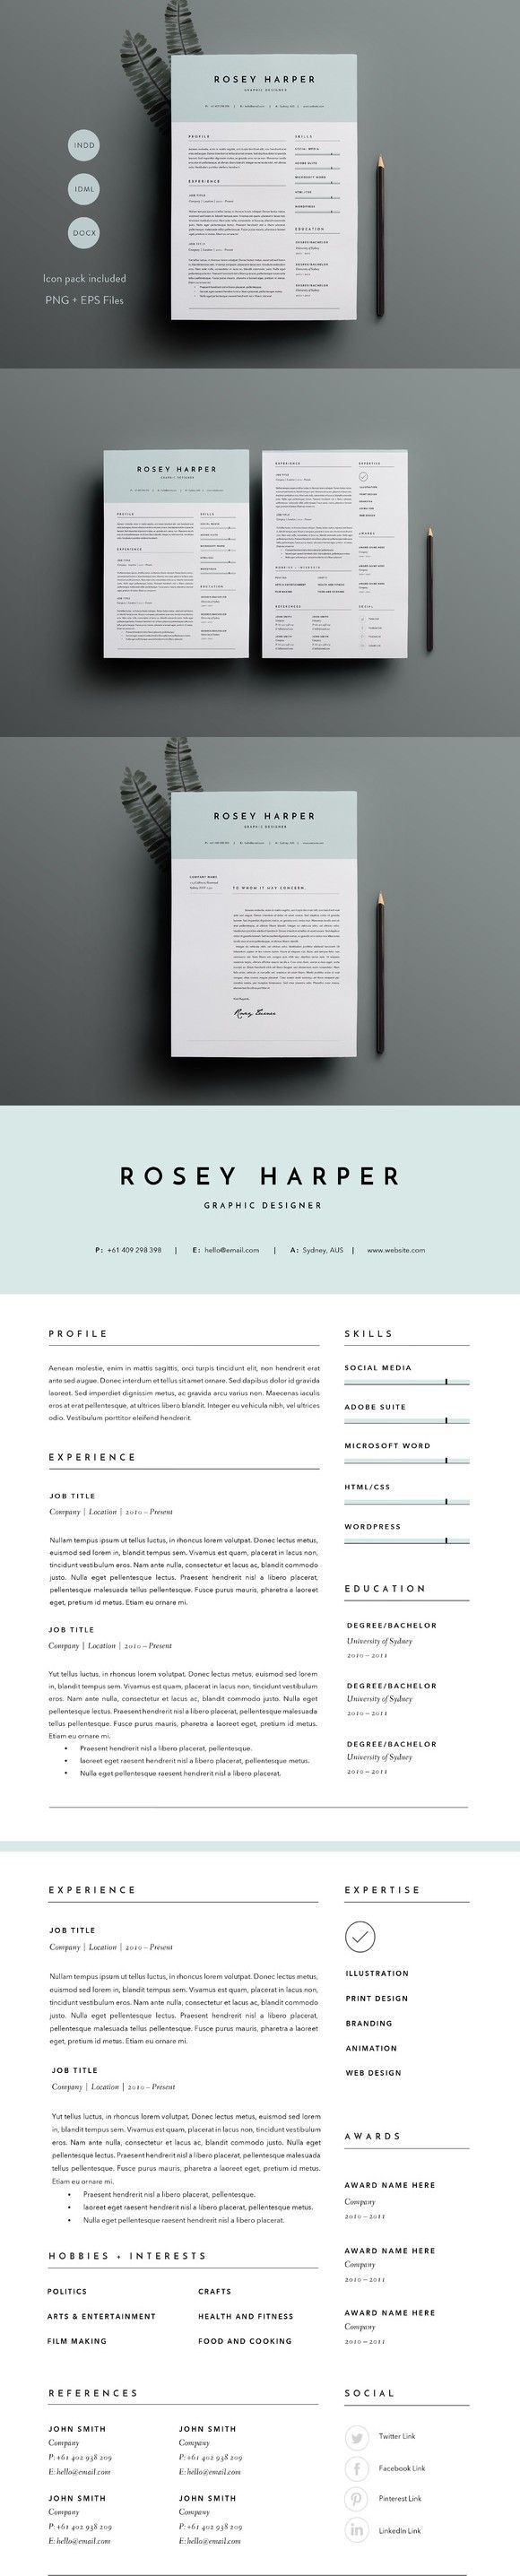 3 Page Resume Template INDD + DOCX